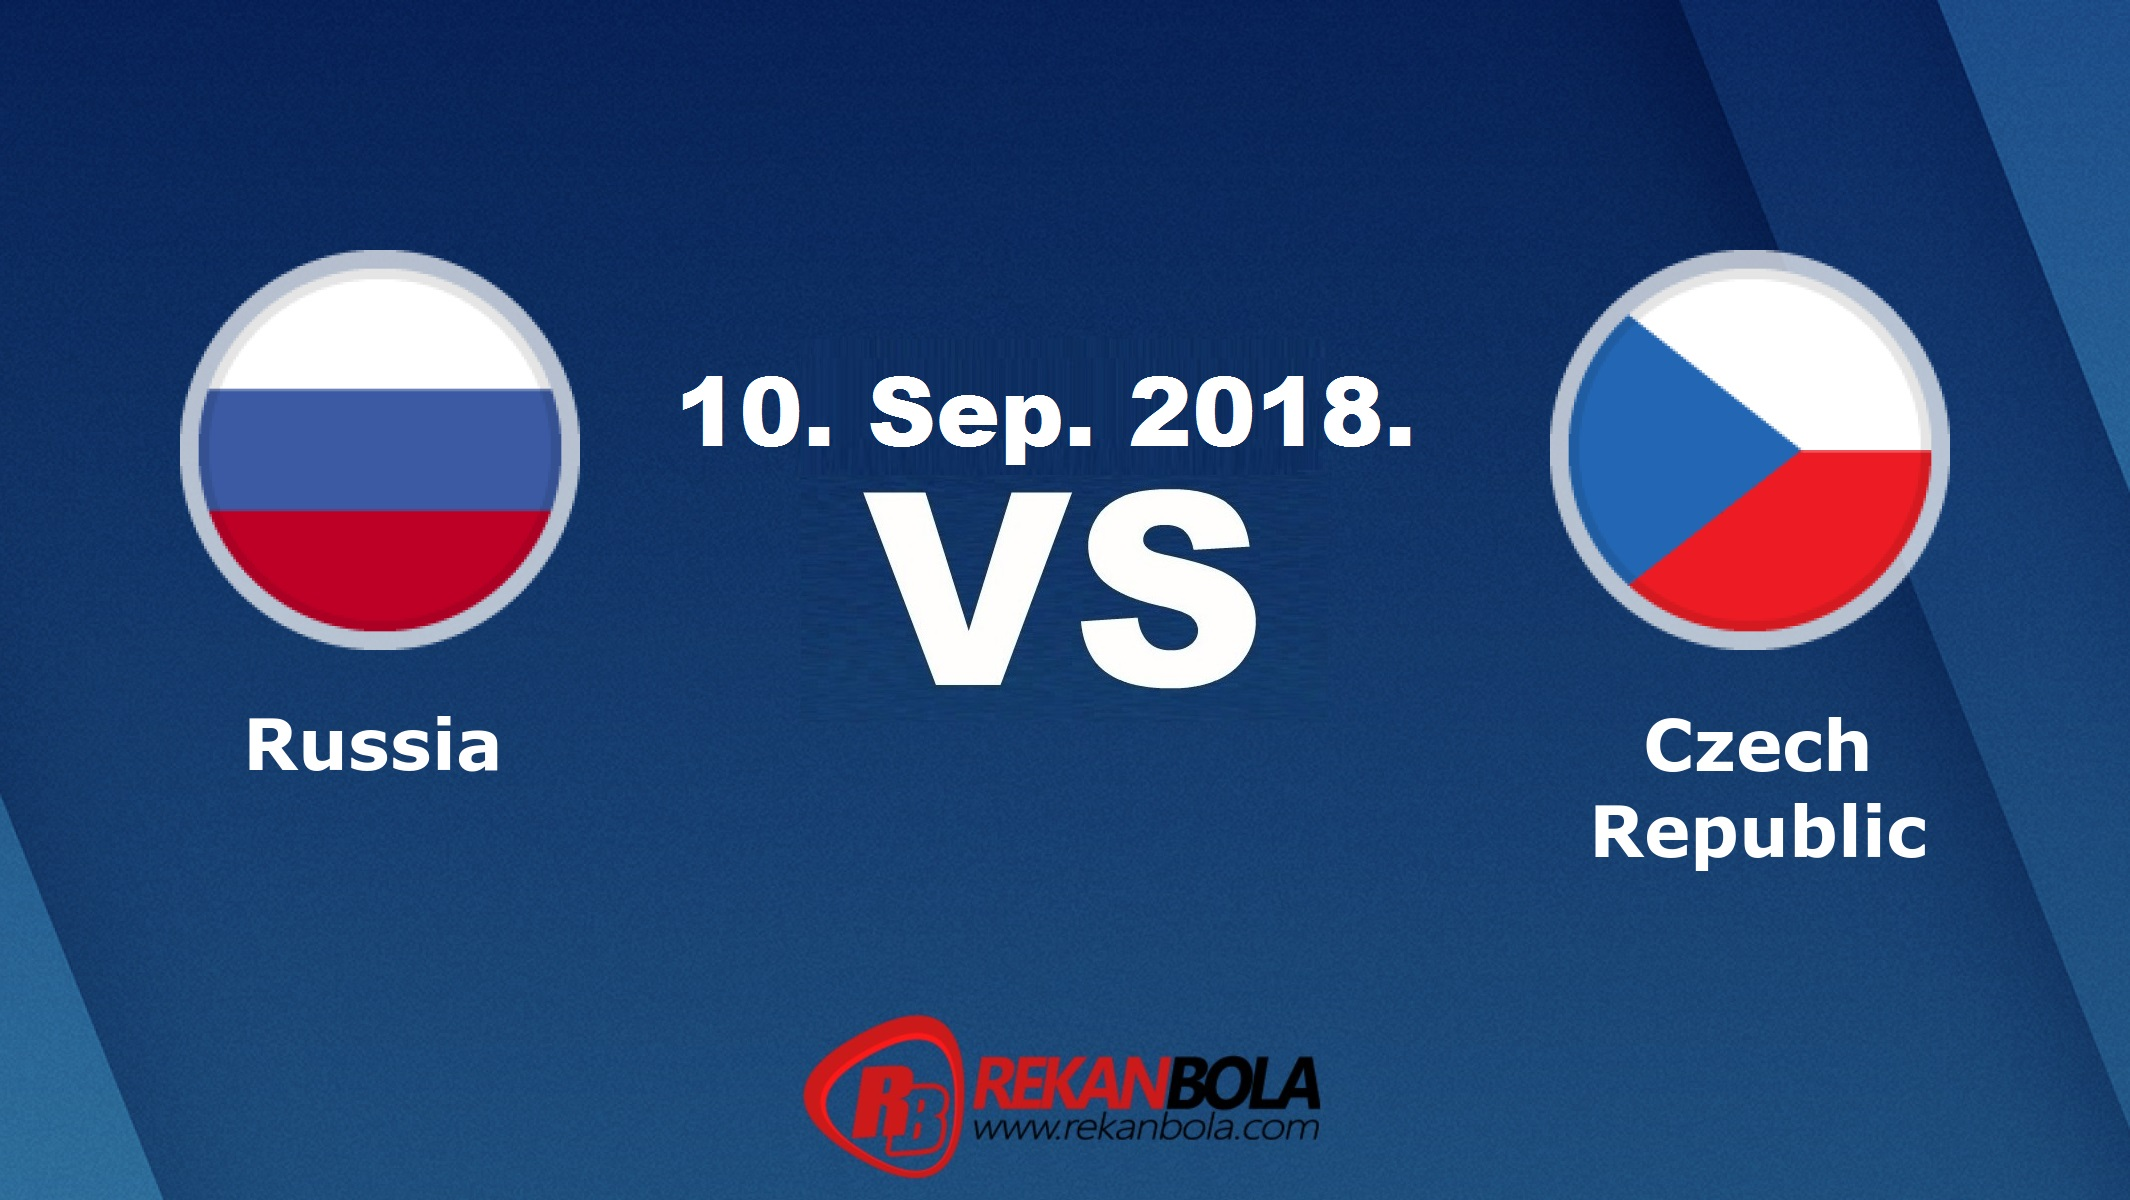 Nonton Siaran Live Streaming Russia Vs Czech Republic 10 September 2018